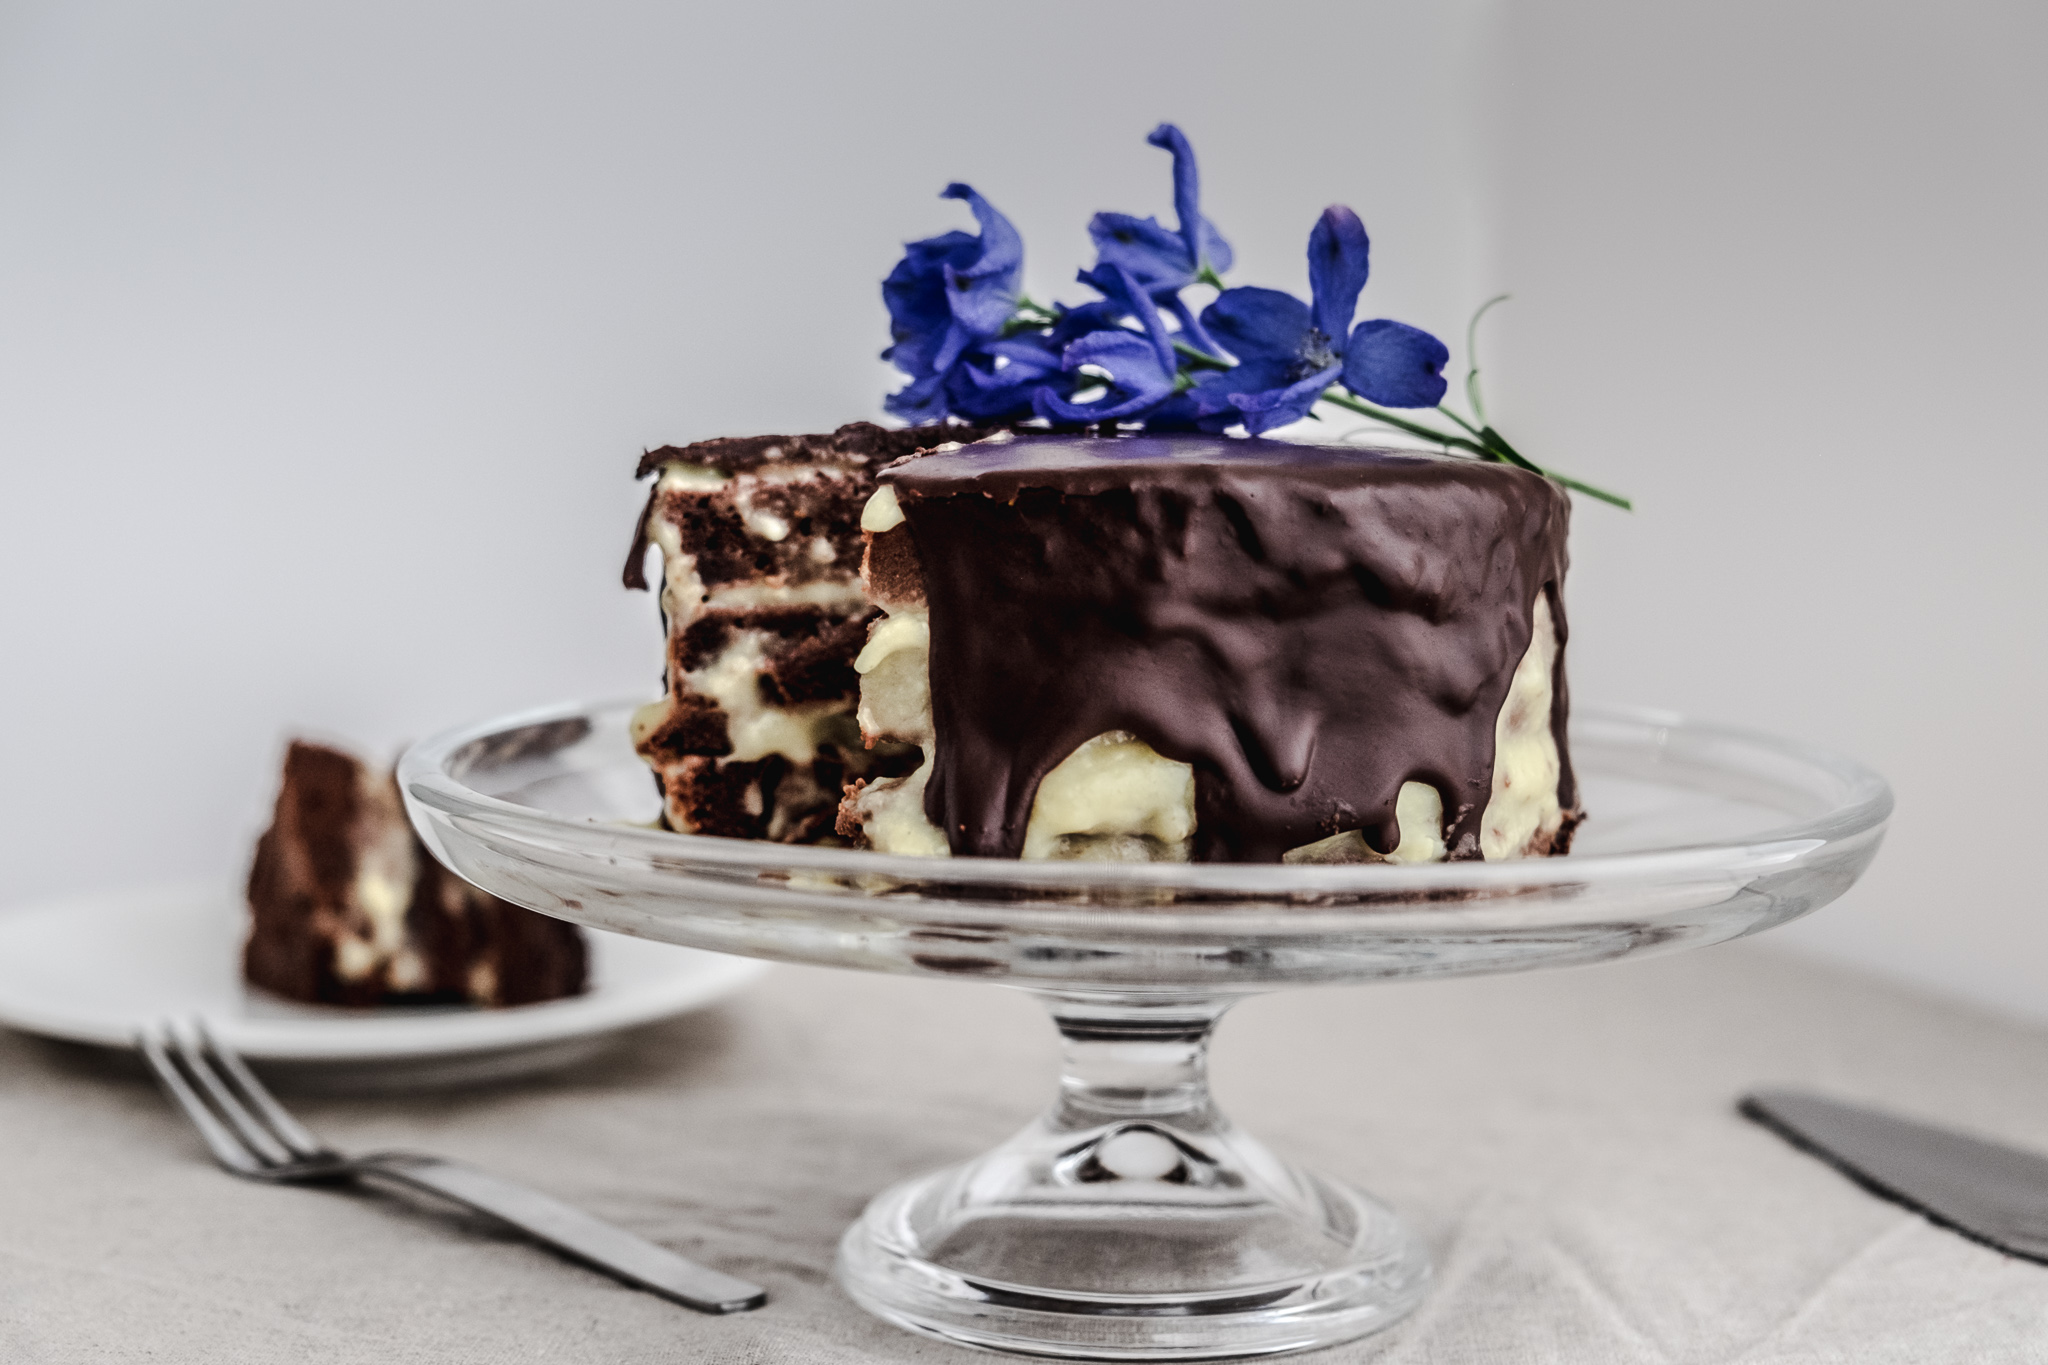 ダークチョコレートと河内晩柑クリームのレイヤーケーキ Vegan and gluten free dark chocolate and kawachi-bankan curd layer cake